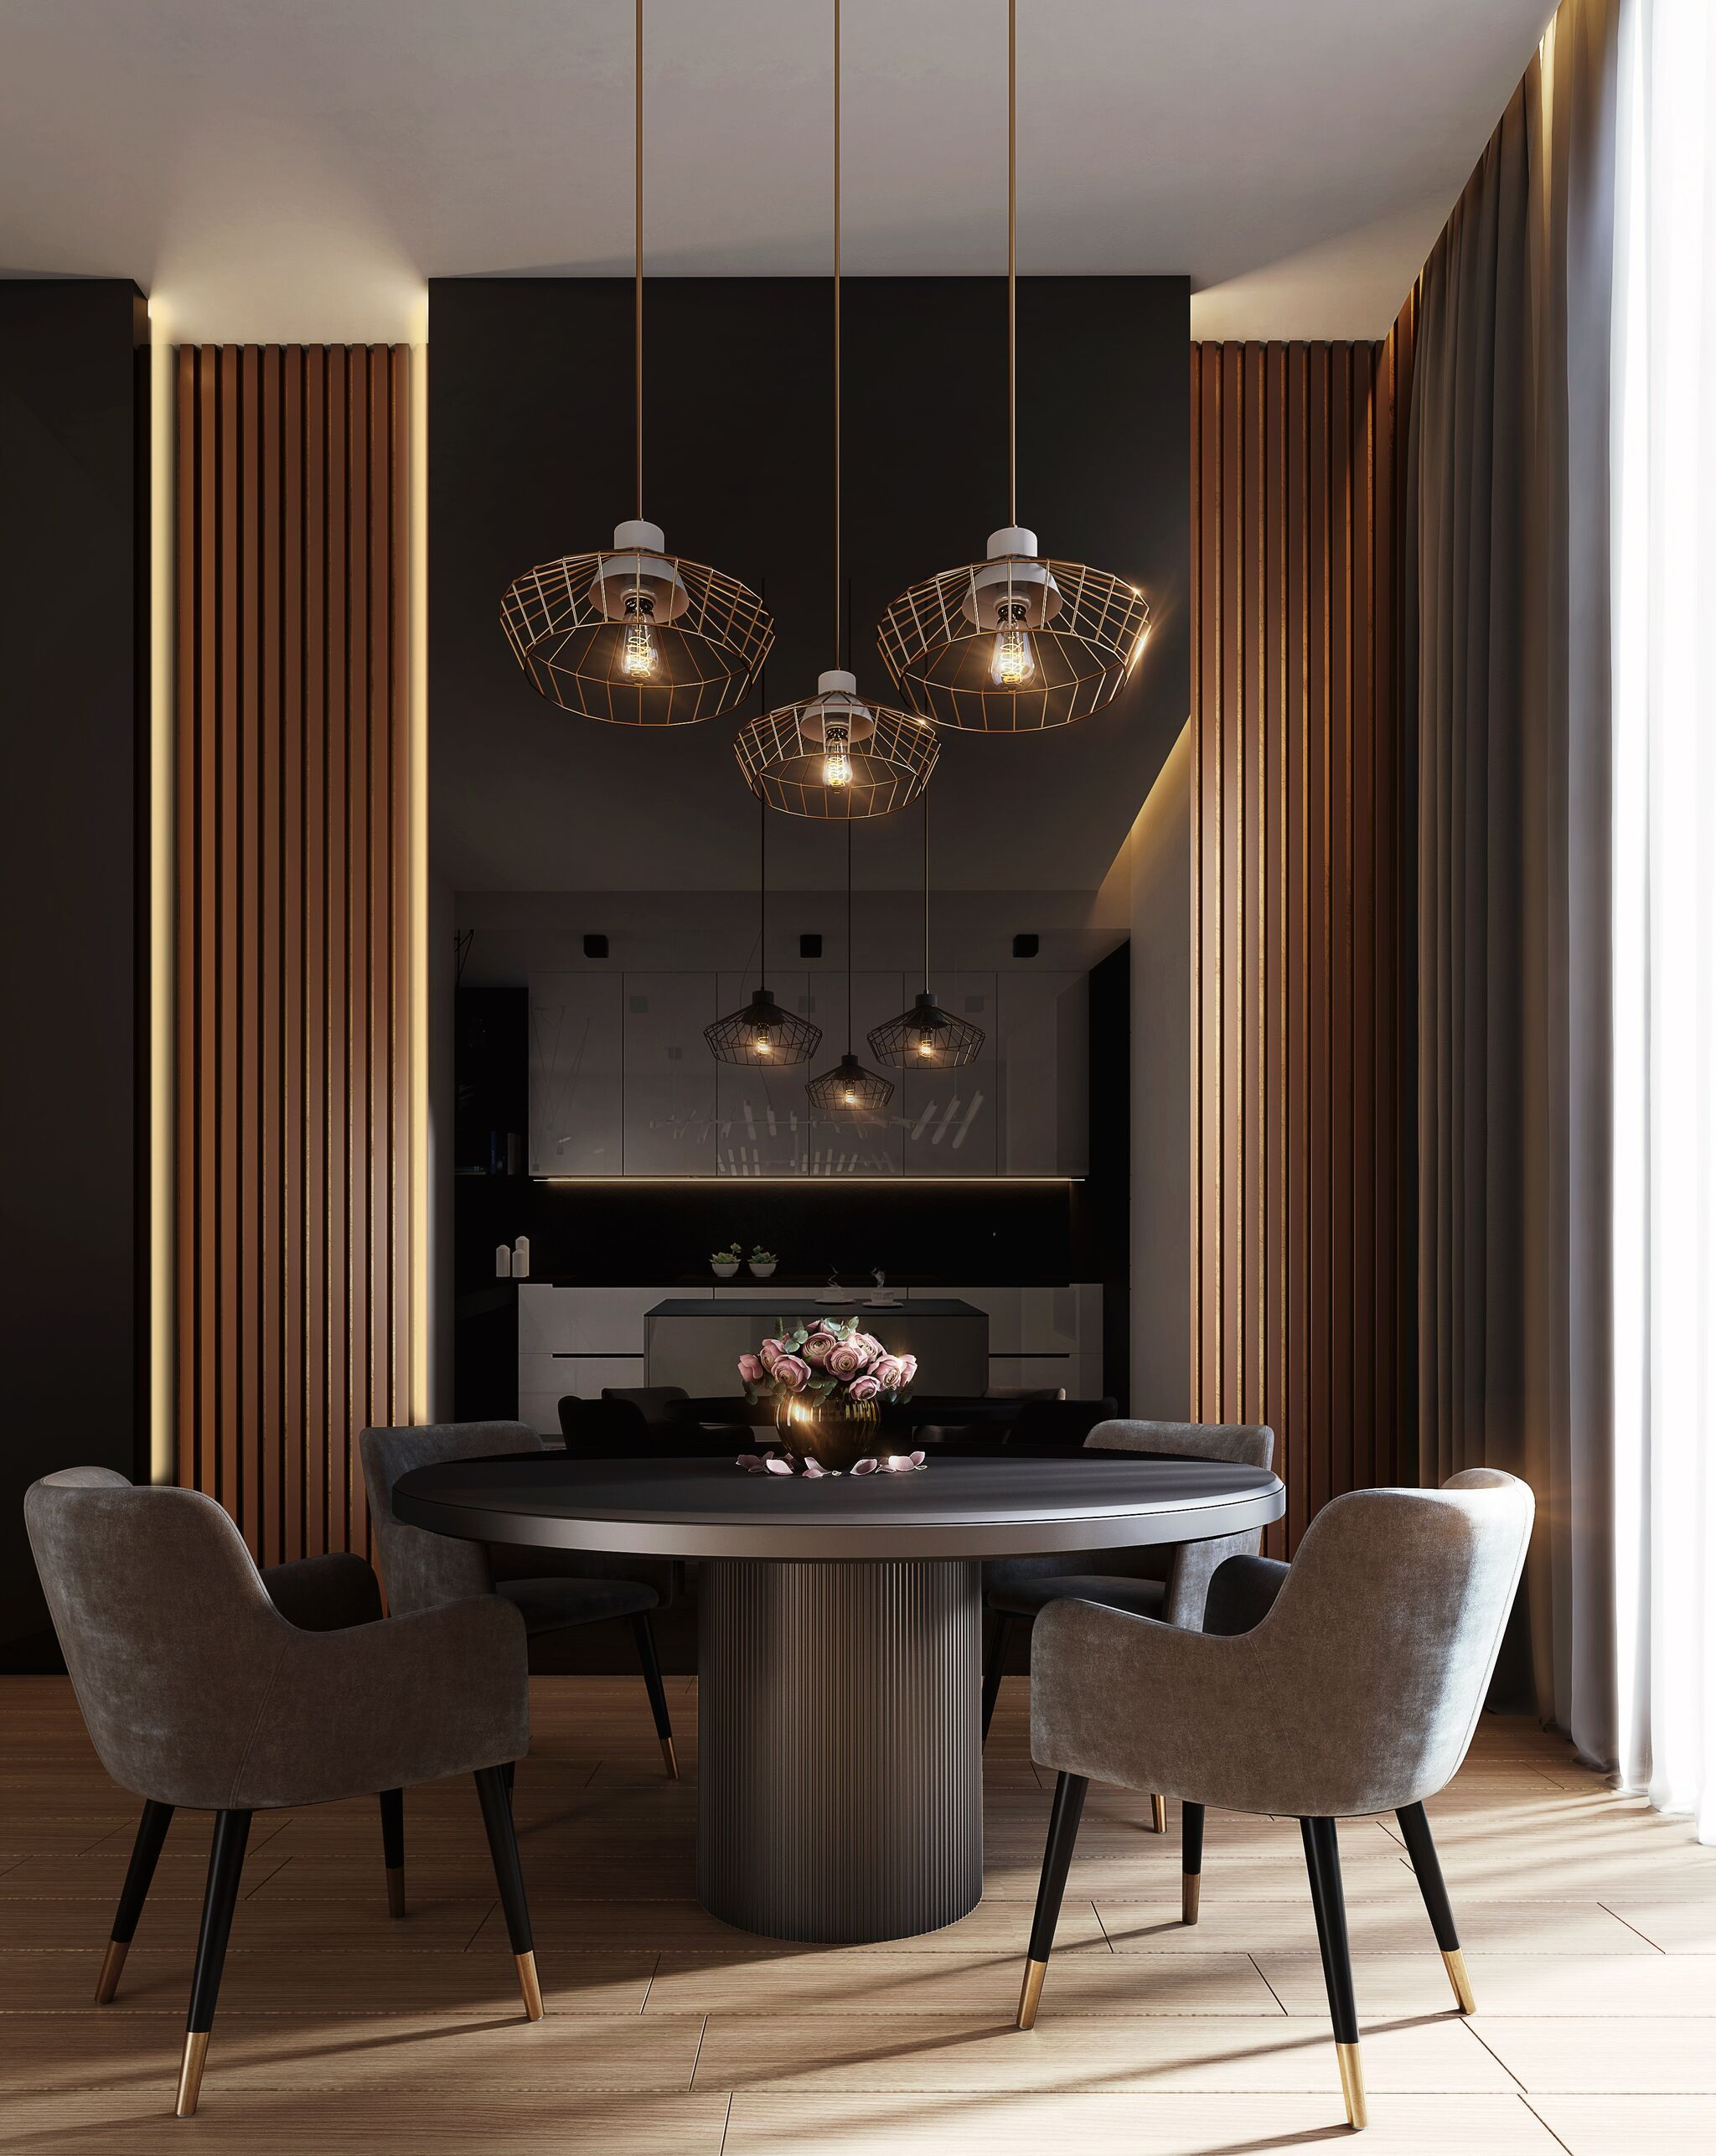 Leave Your Mark On The Industry And Catch Costly Mistakes In Design With Our 3d Product Rendering Serv Stylish Dining Room Dining Room Design Luxury Home Decor